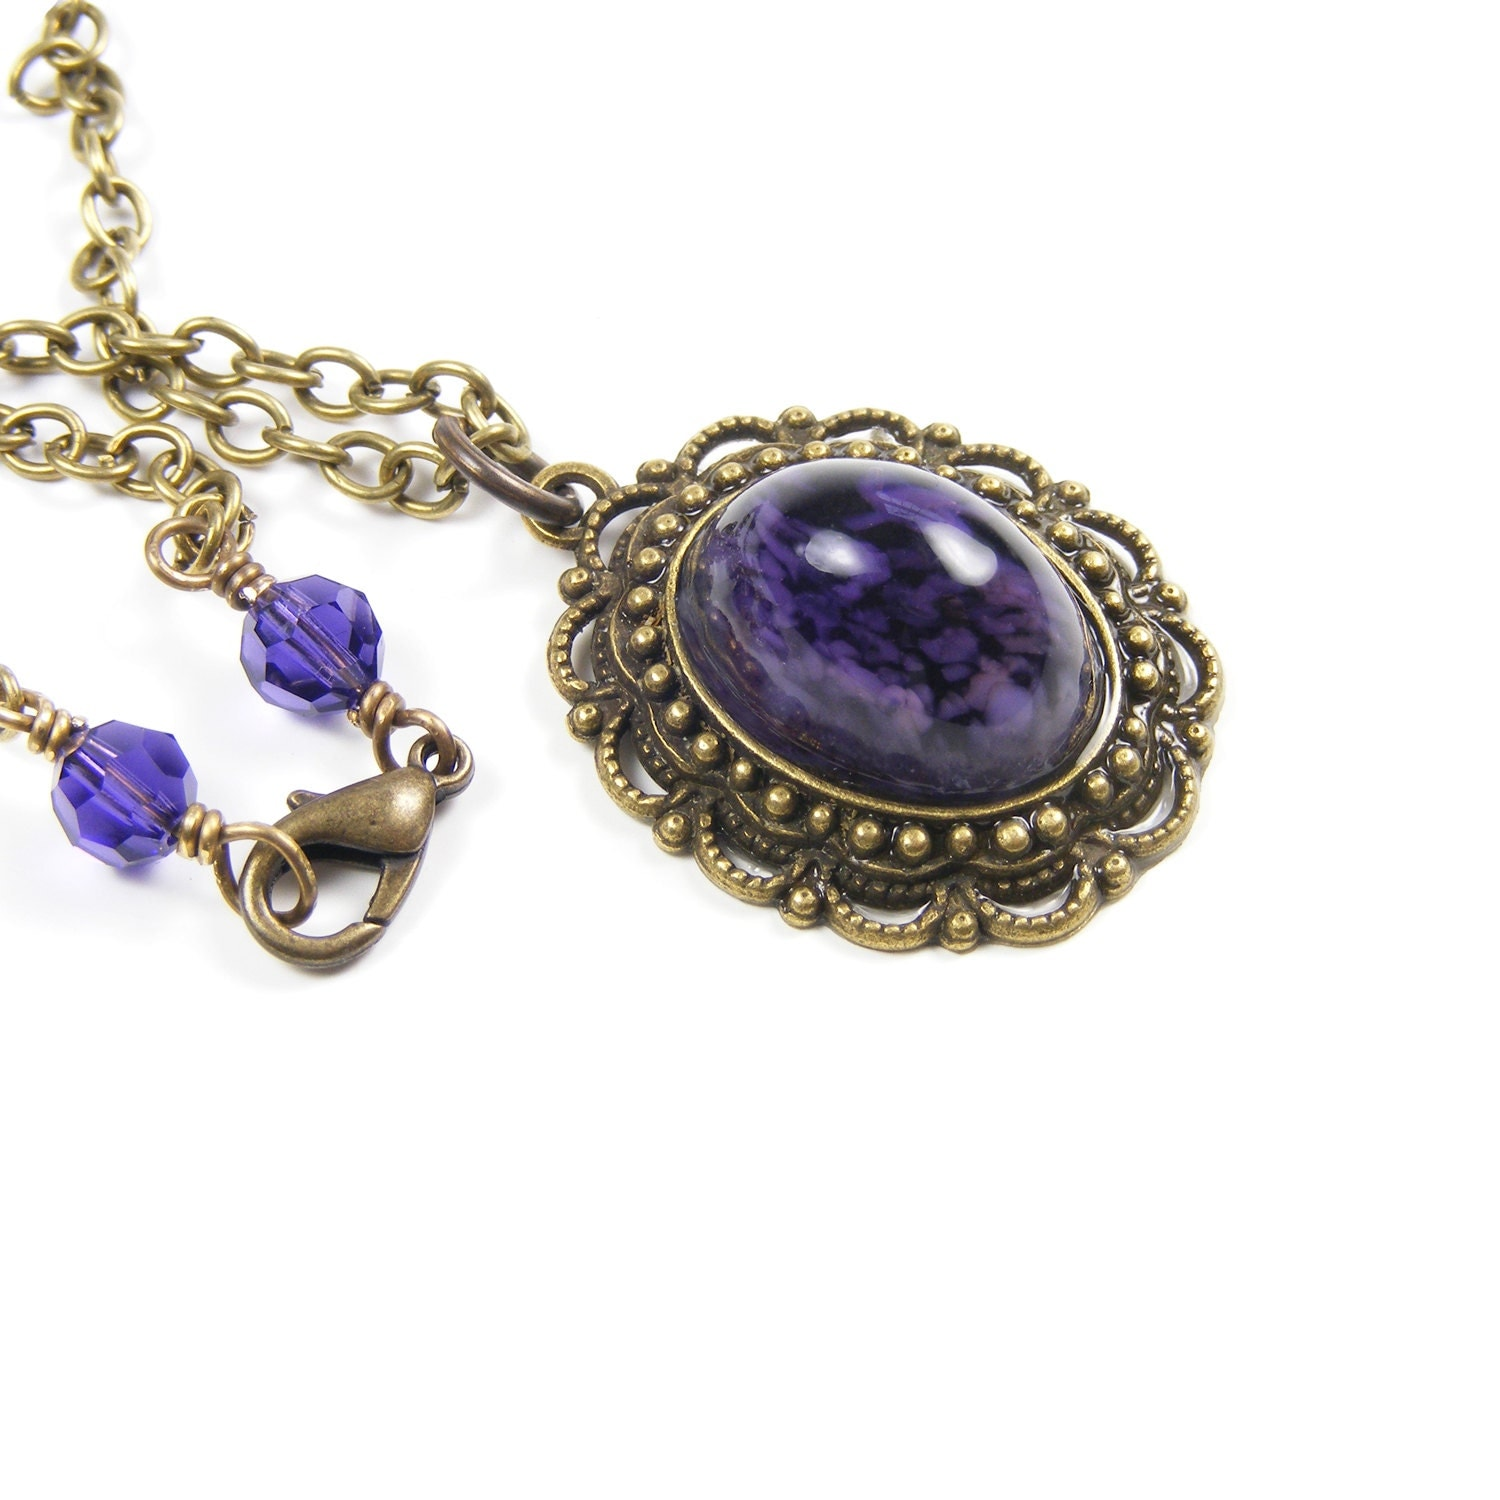 Oval Purple Pendant Necklace, Downton Abbey Inspired, Edwardian Estate Style Vintage Glass Jewelry